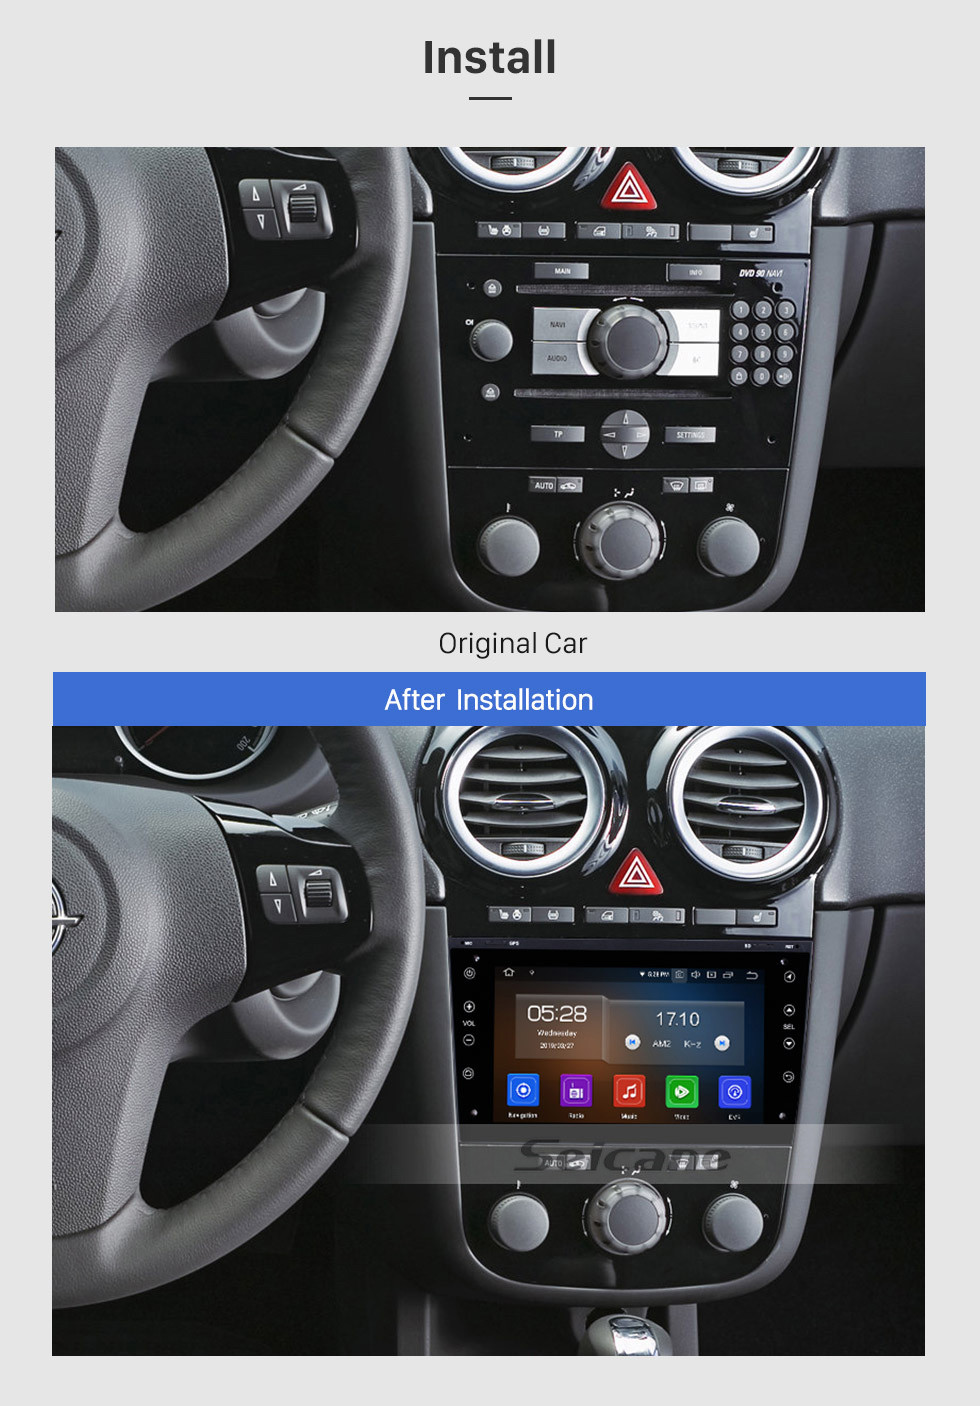 Seicane In dash Radio GPS Navigation Stereo Upgrade for 2006 2007 2008-2011 Opel Corsa Android 9.0 Bluetooth WIFI USB  RDS Audio system Support OBD2 1080P DVR Auto A/V